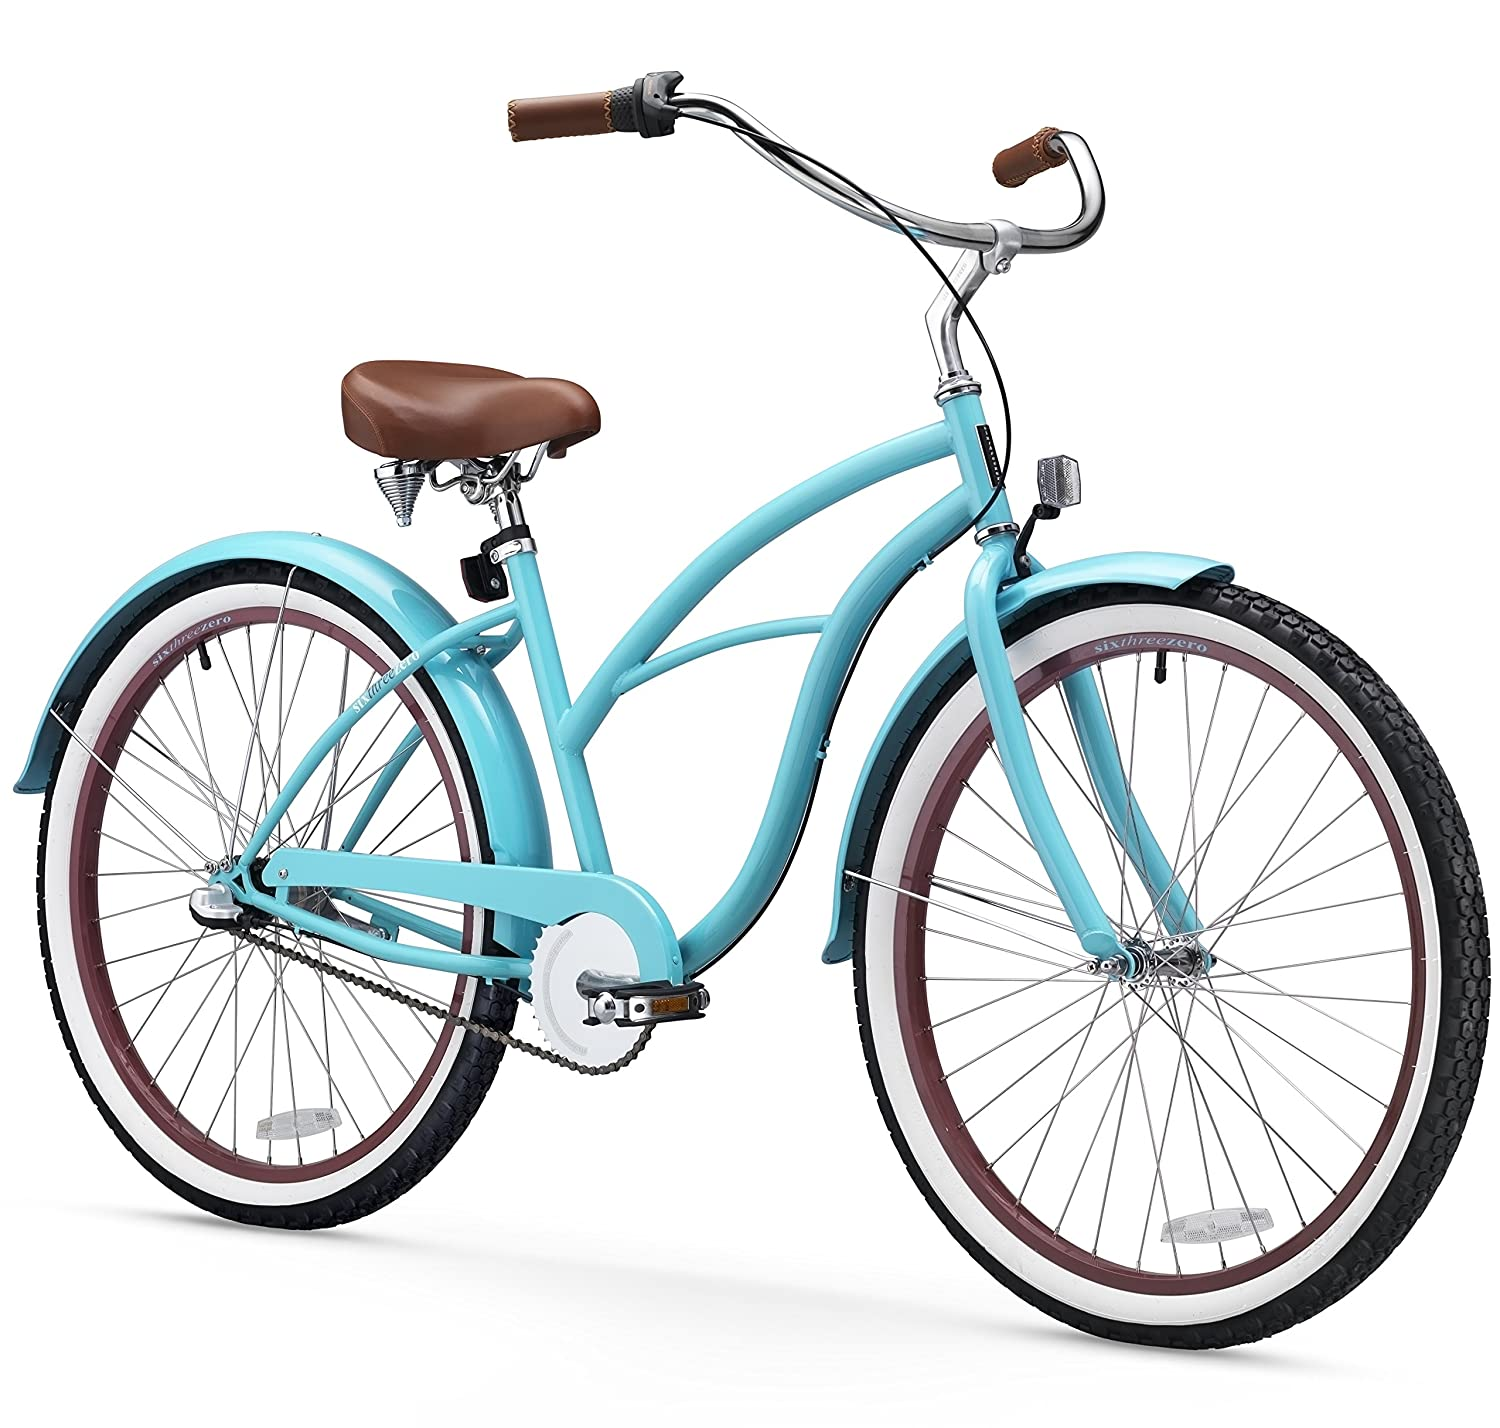 sixthreezero Women's 3-Speed Beach Cruiser Bicycle